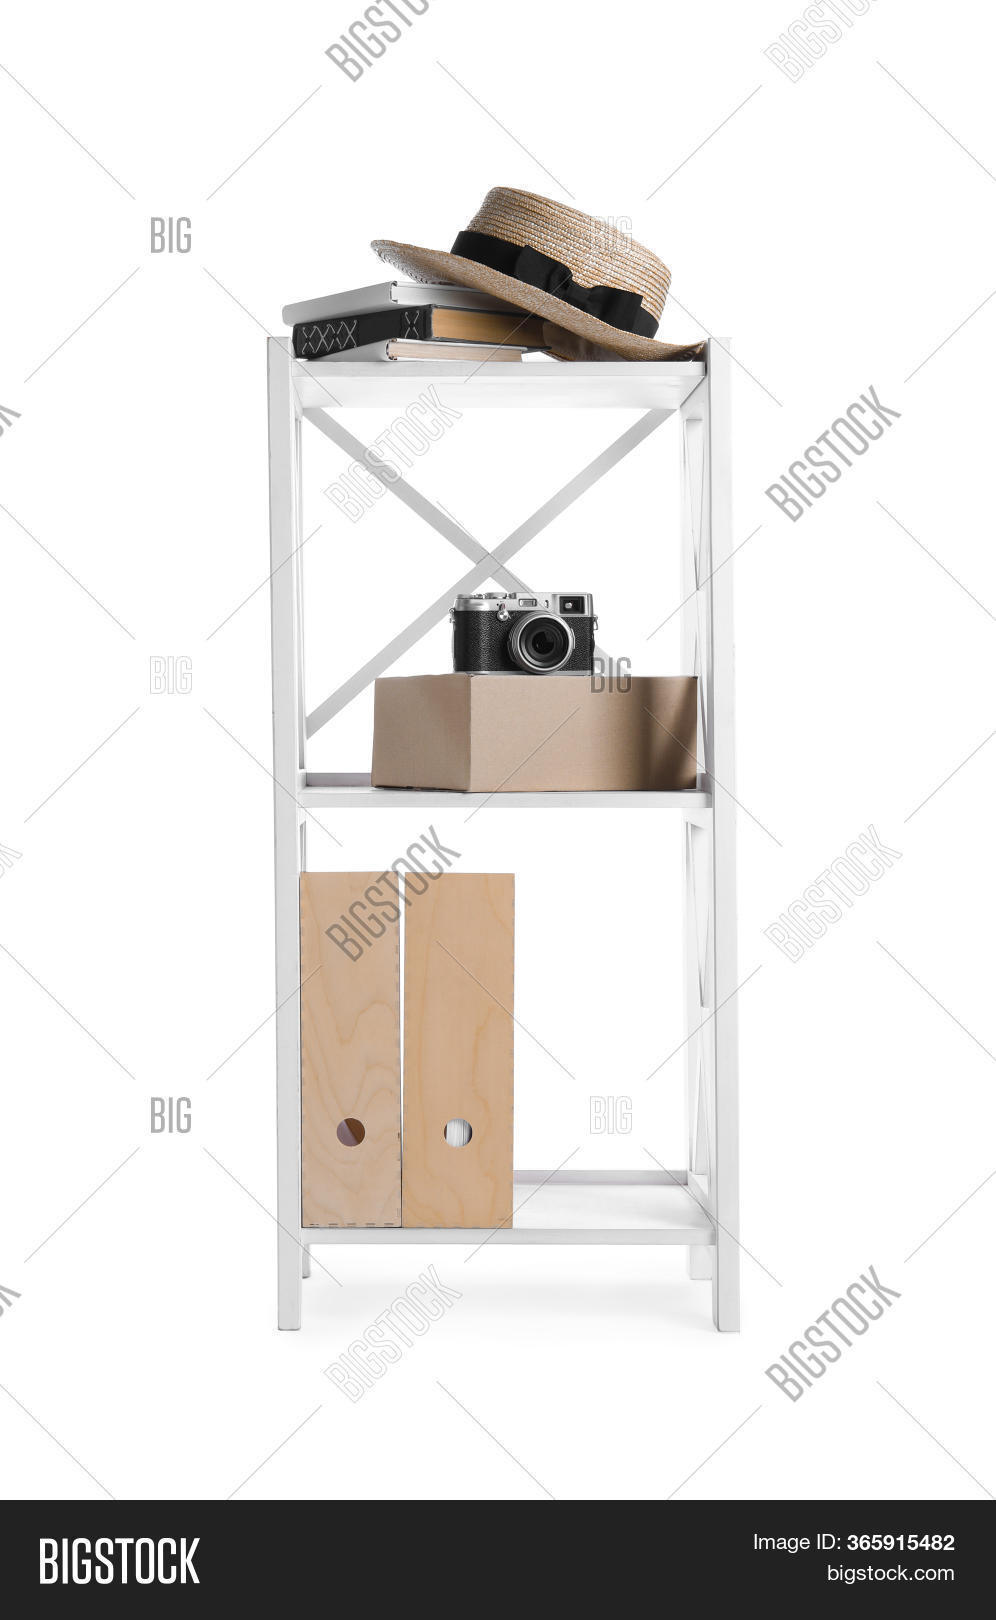 Wooden Shelving Unit Image Photo Free Trial Bigstock